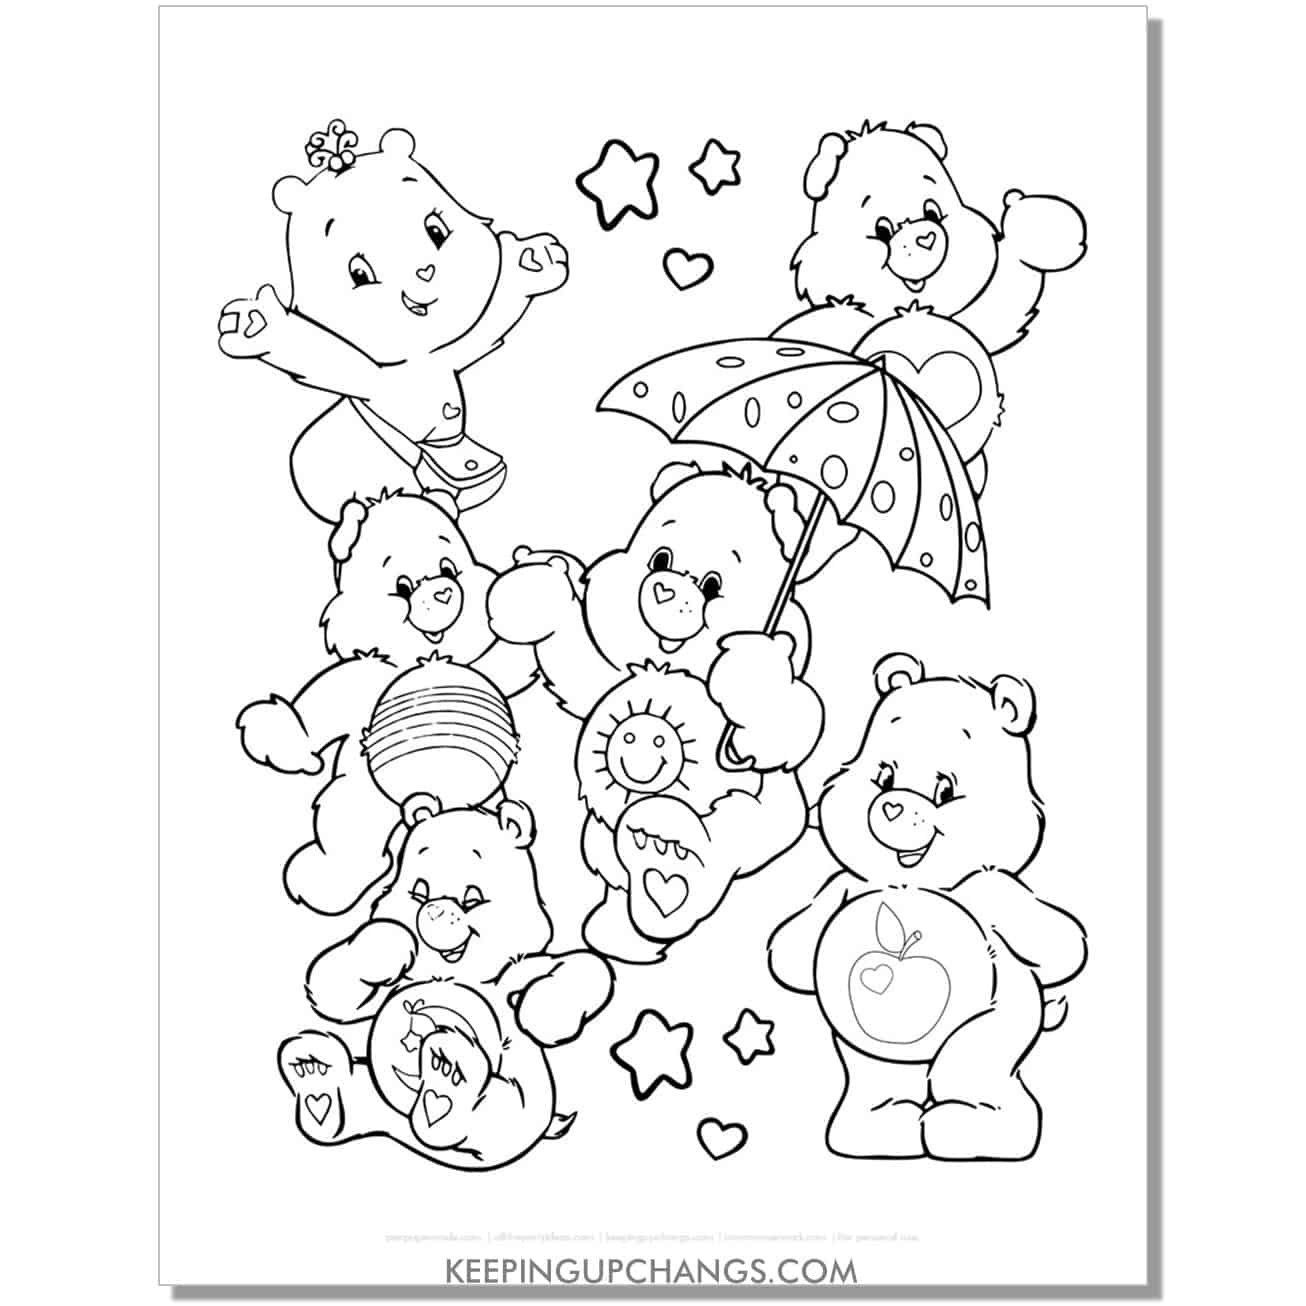 care bear coloring page with wonderheart, tender heart, funshine, take care, bedtime and smart heart bears.